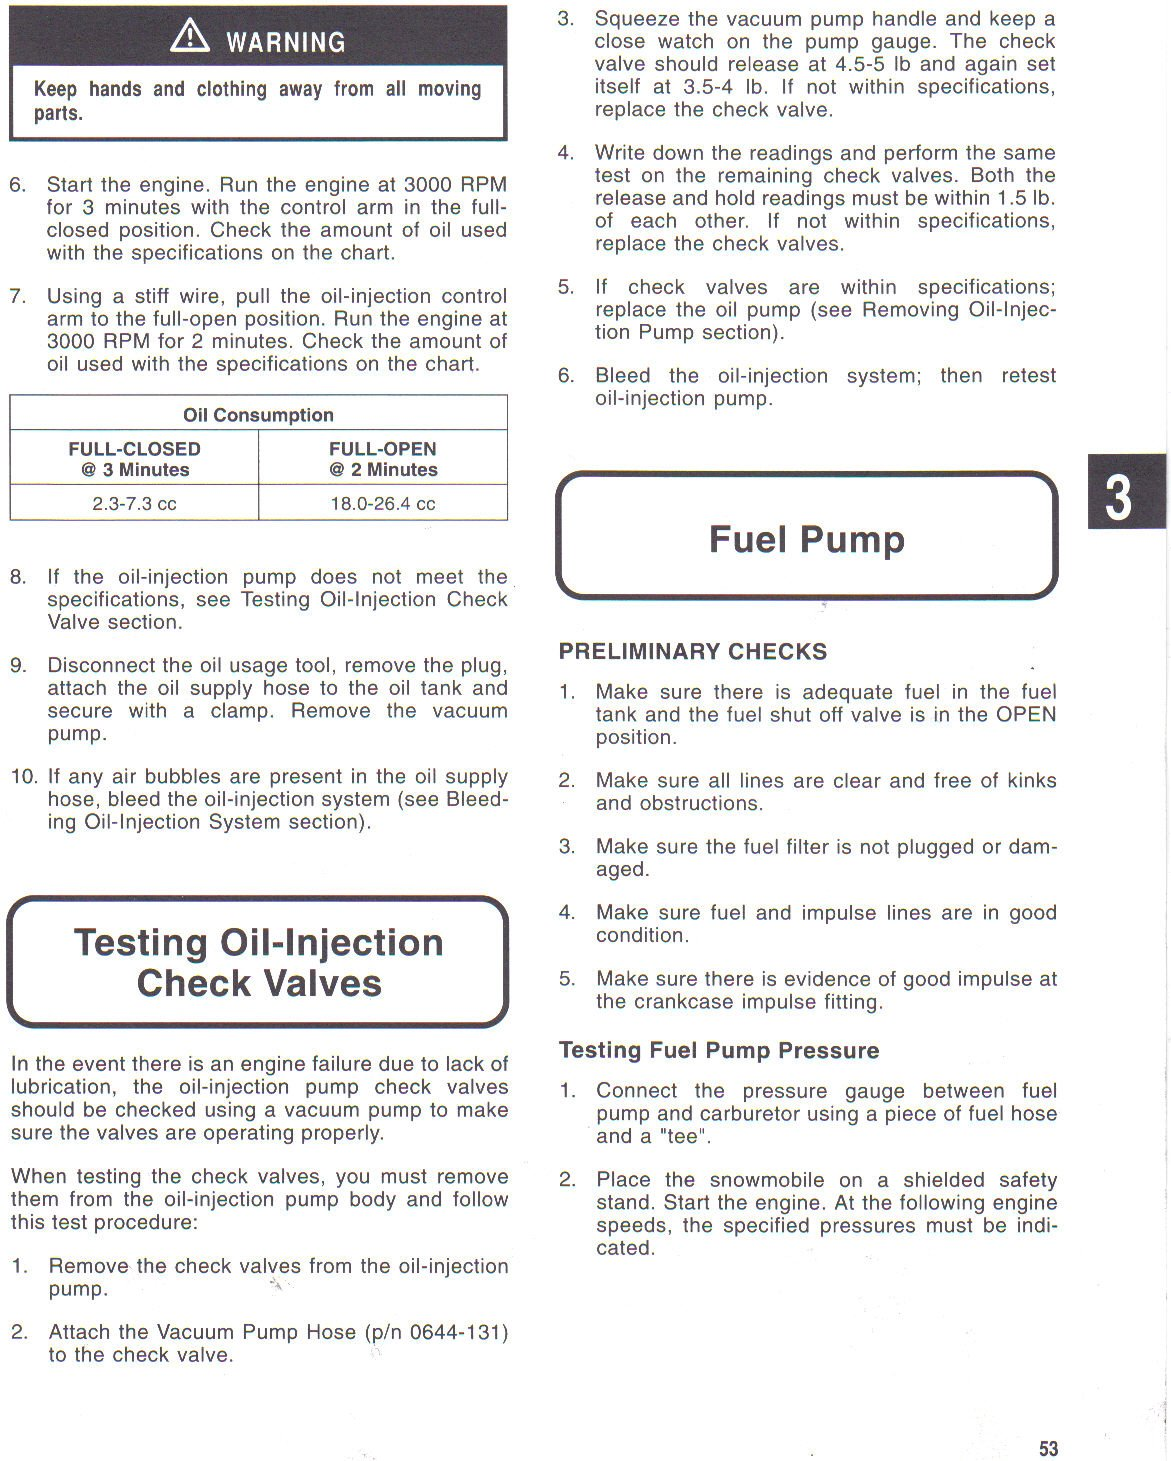 Oil Injection Adjustment-oil_injection3.jpg